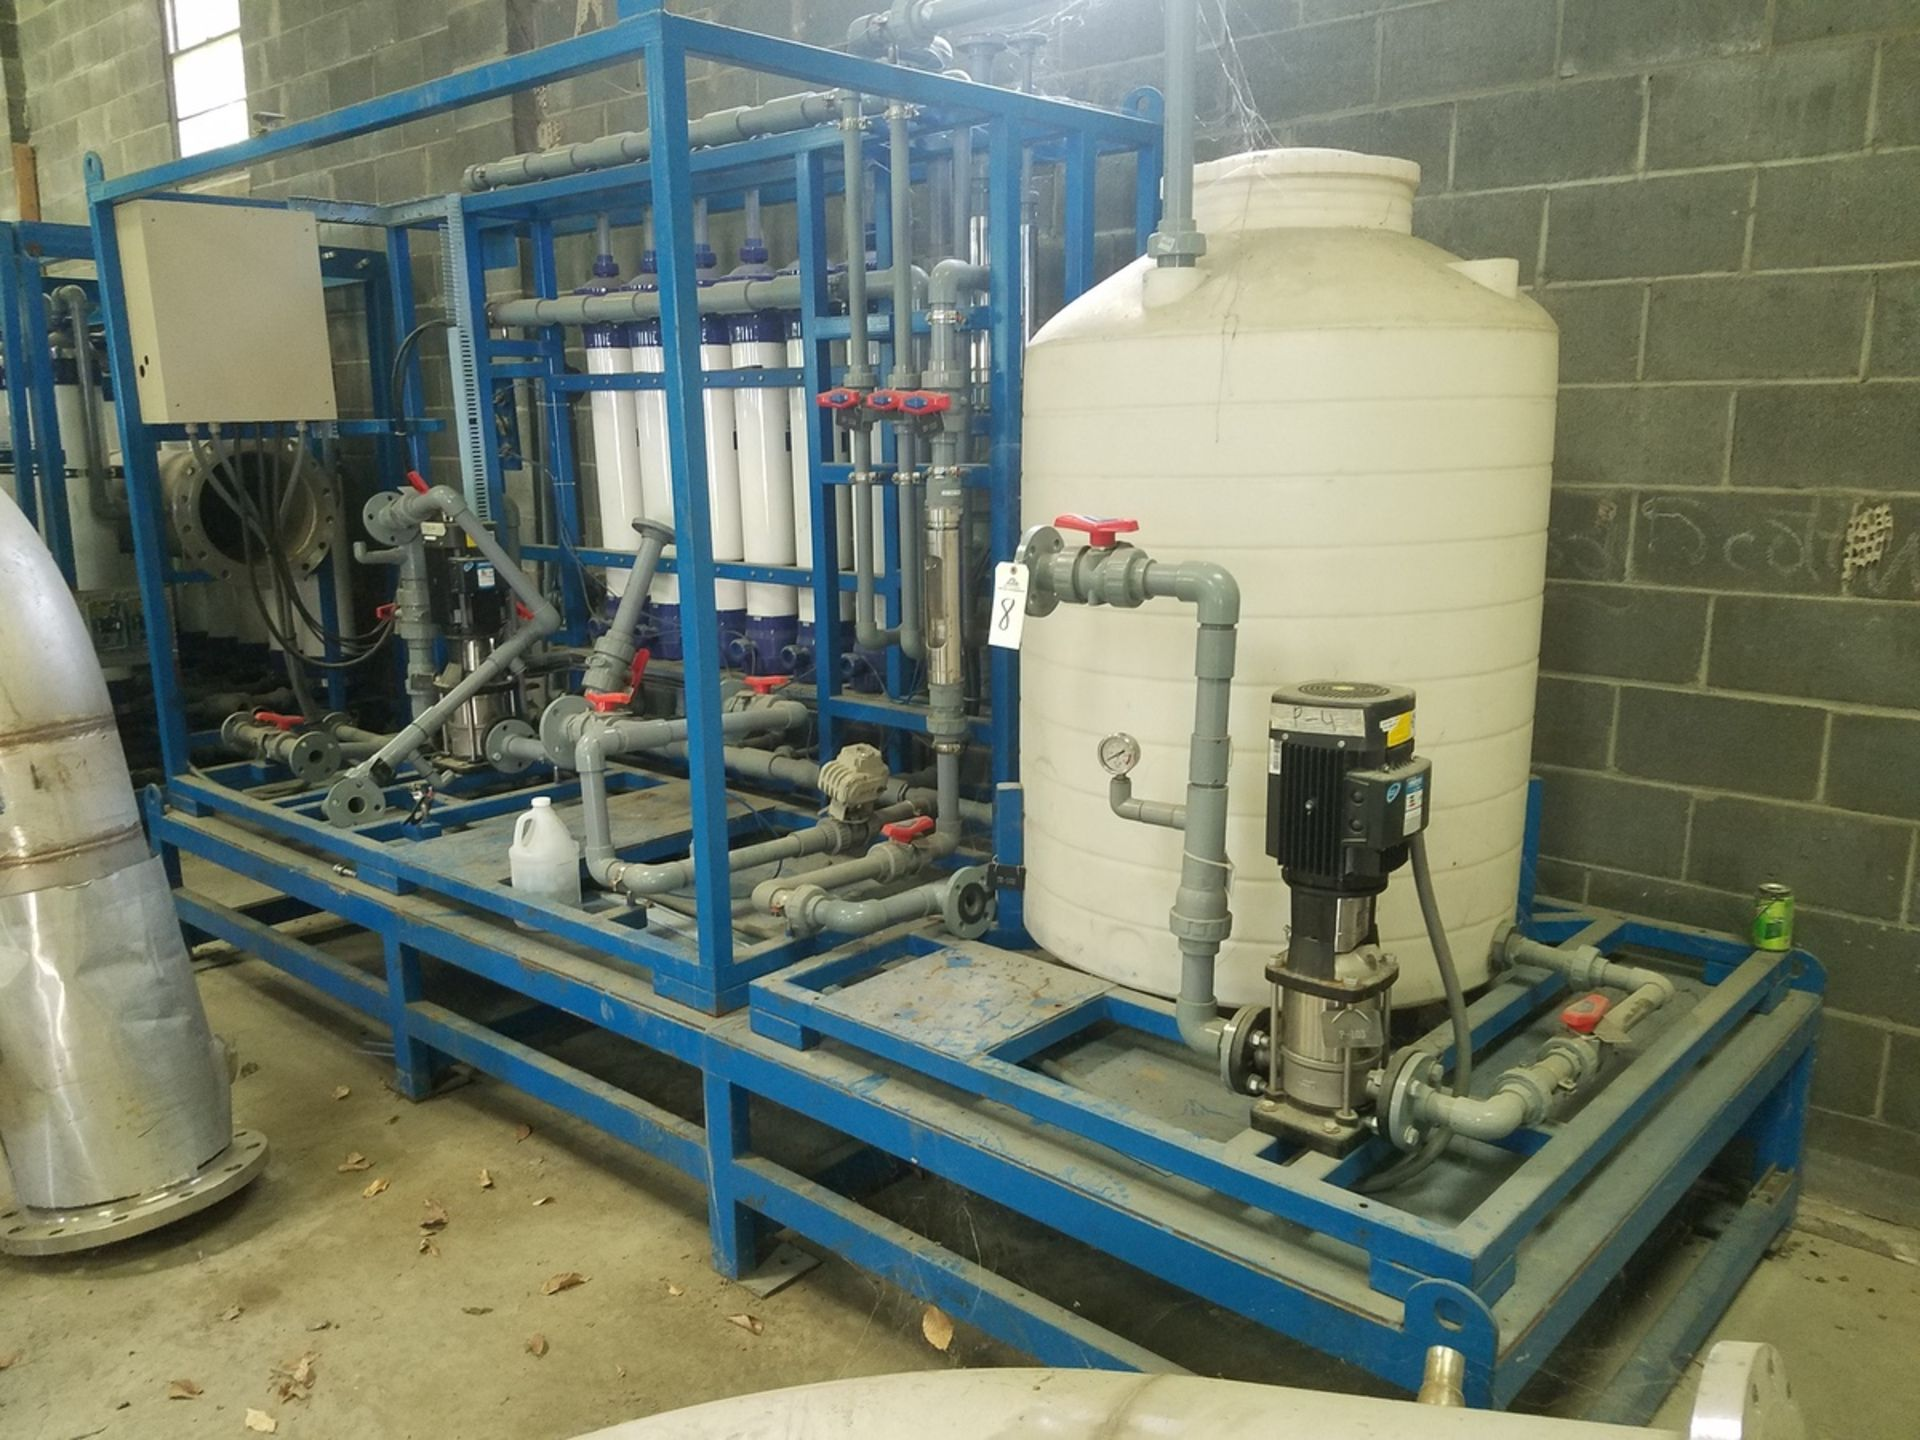 Petro Sep UF Membrane Filtration Skid System, Includes (2) SS Cartridge Filters, | Rig Fee: $1200